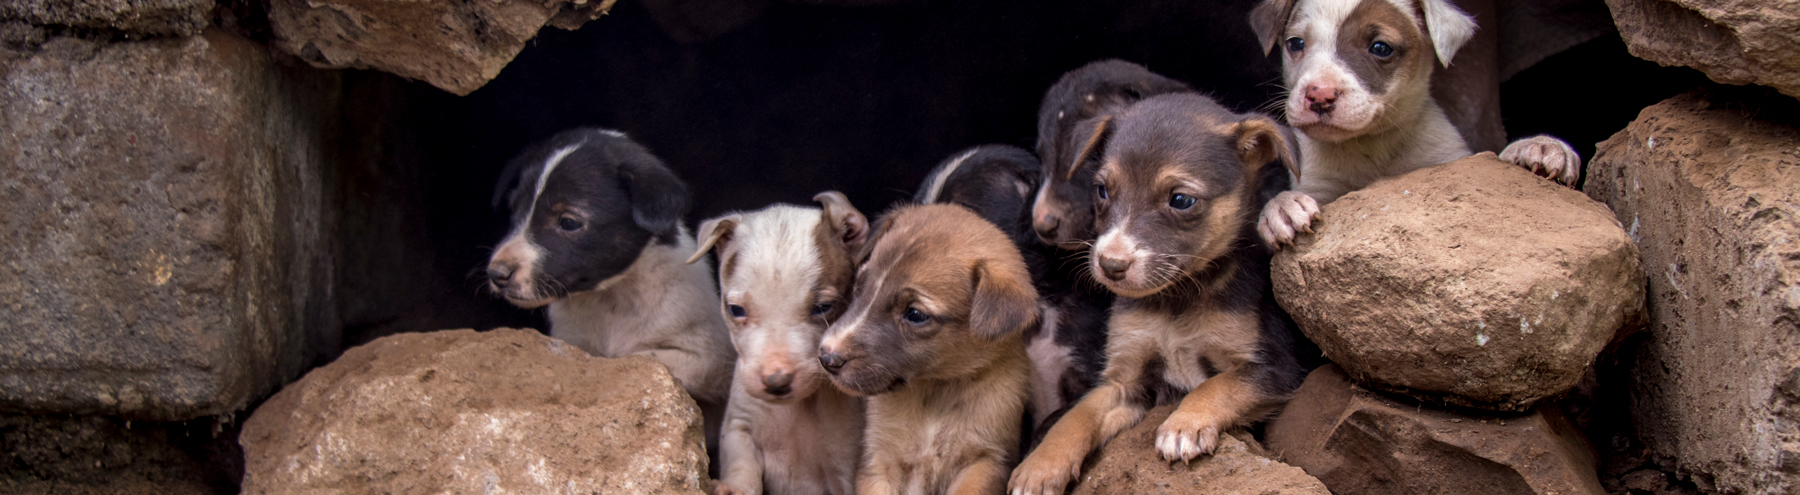 Litter of 9 puppies taking shelter in a stone wall near the vaccination drive in Kenya